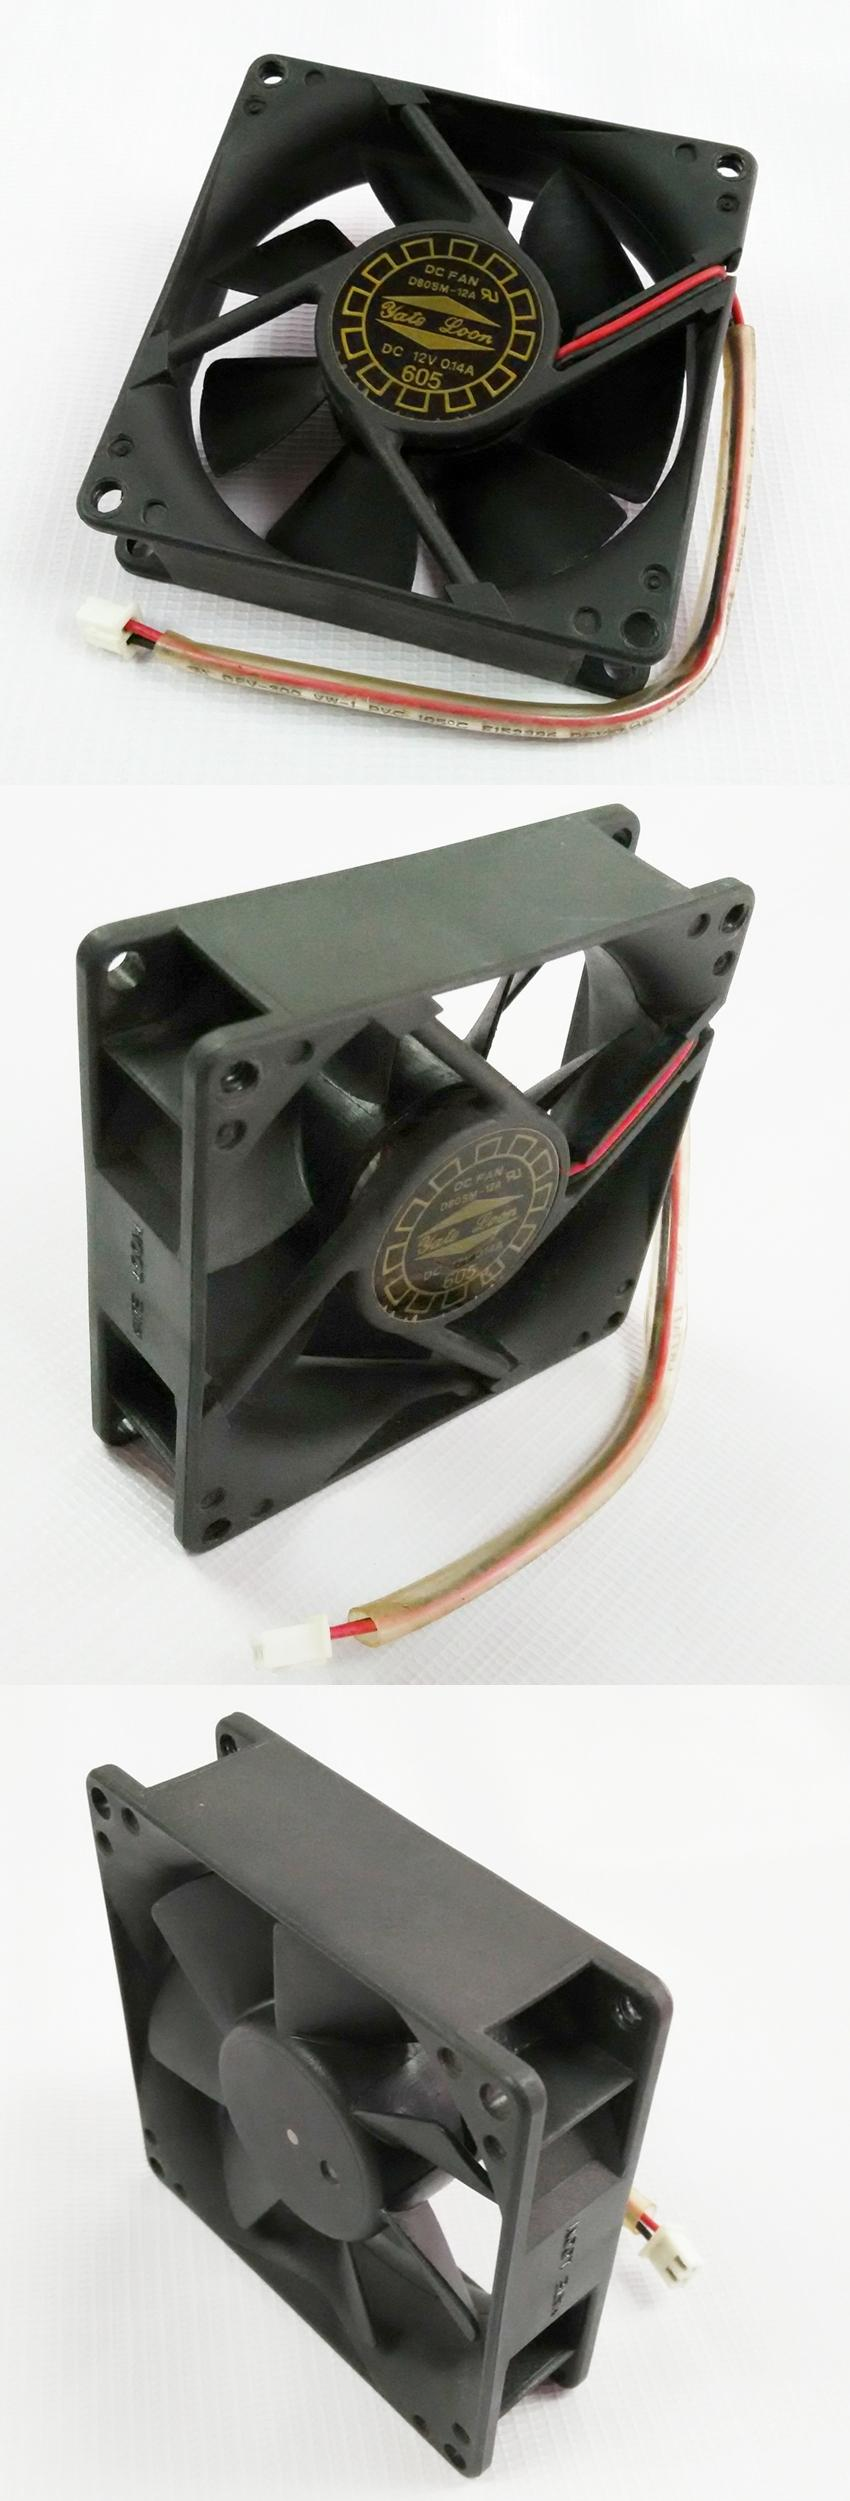 DC12V 80MM COOLING FAN